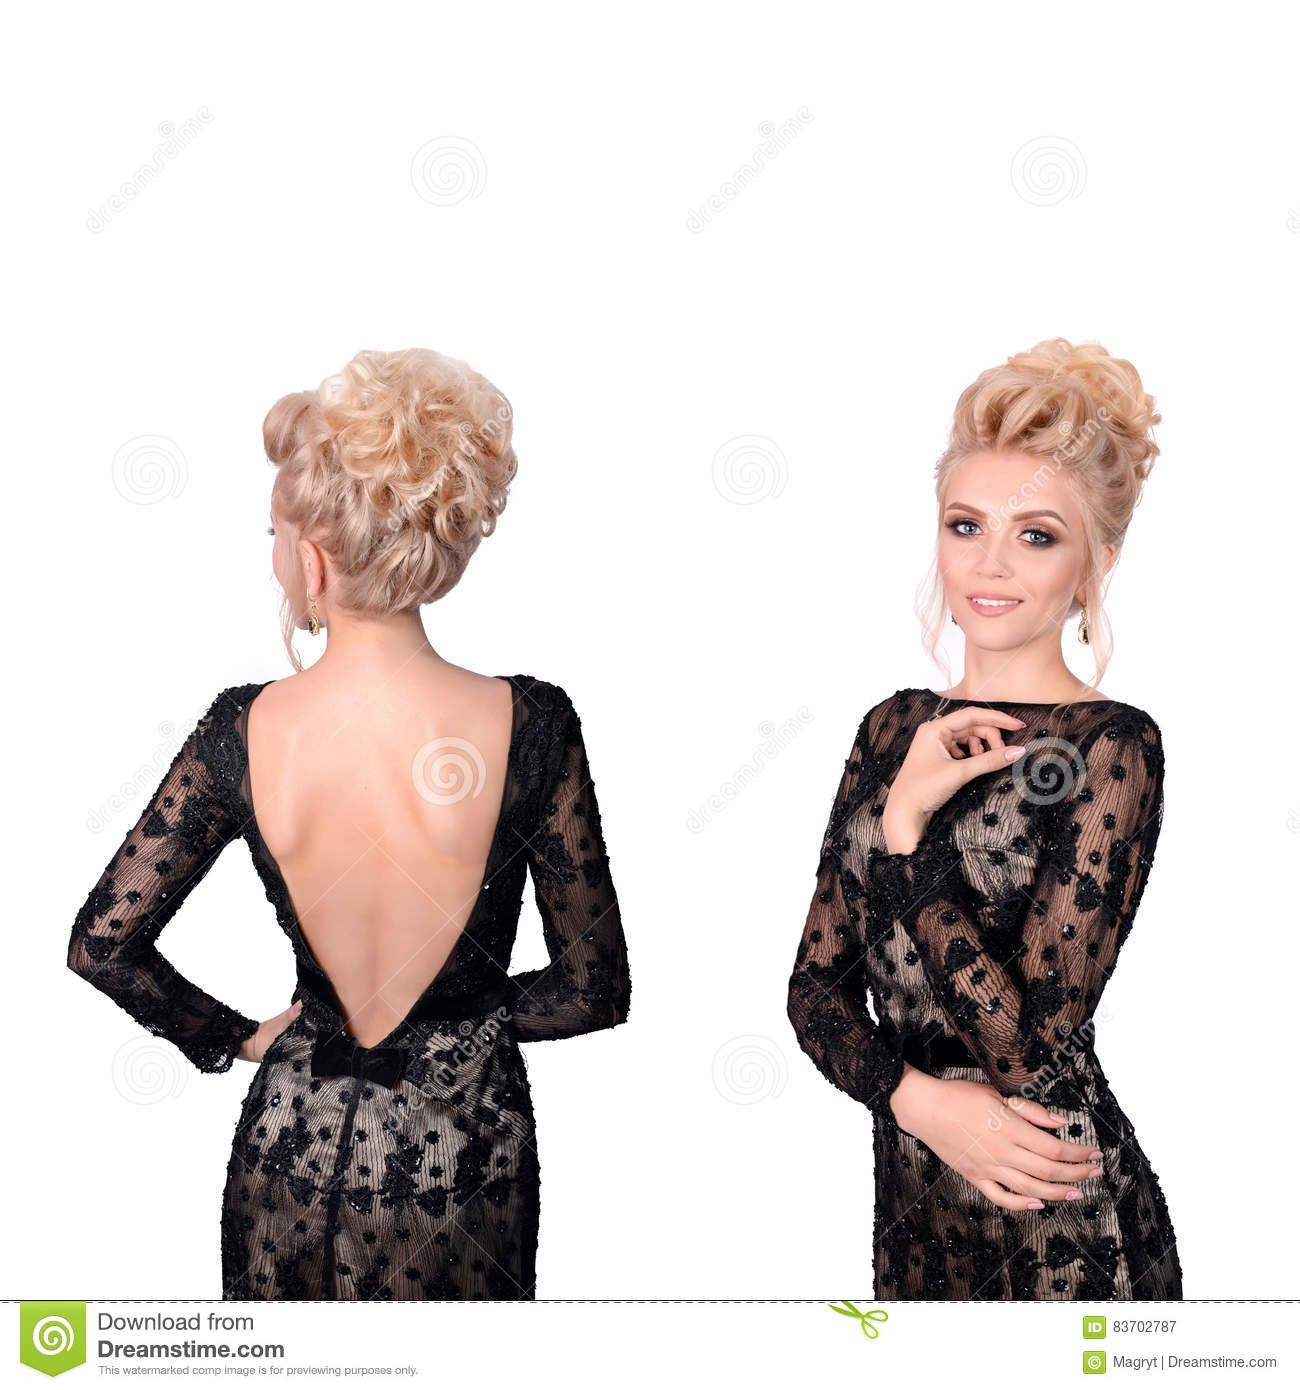 86490f11239d43 Beautiful blonde woman in elegant black low cut back evening dress with  updo hairstyle. Front